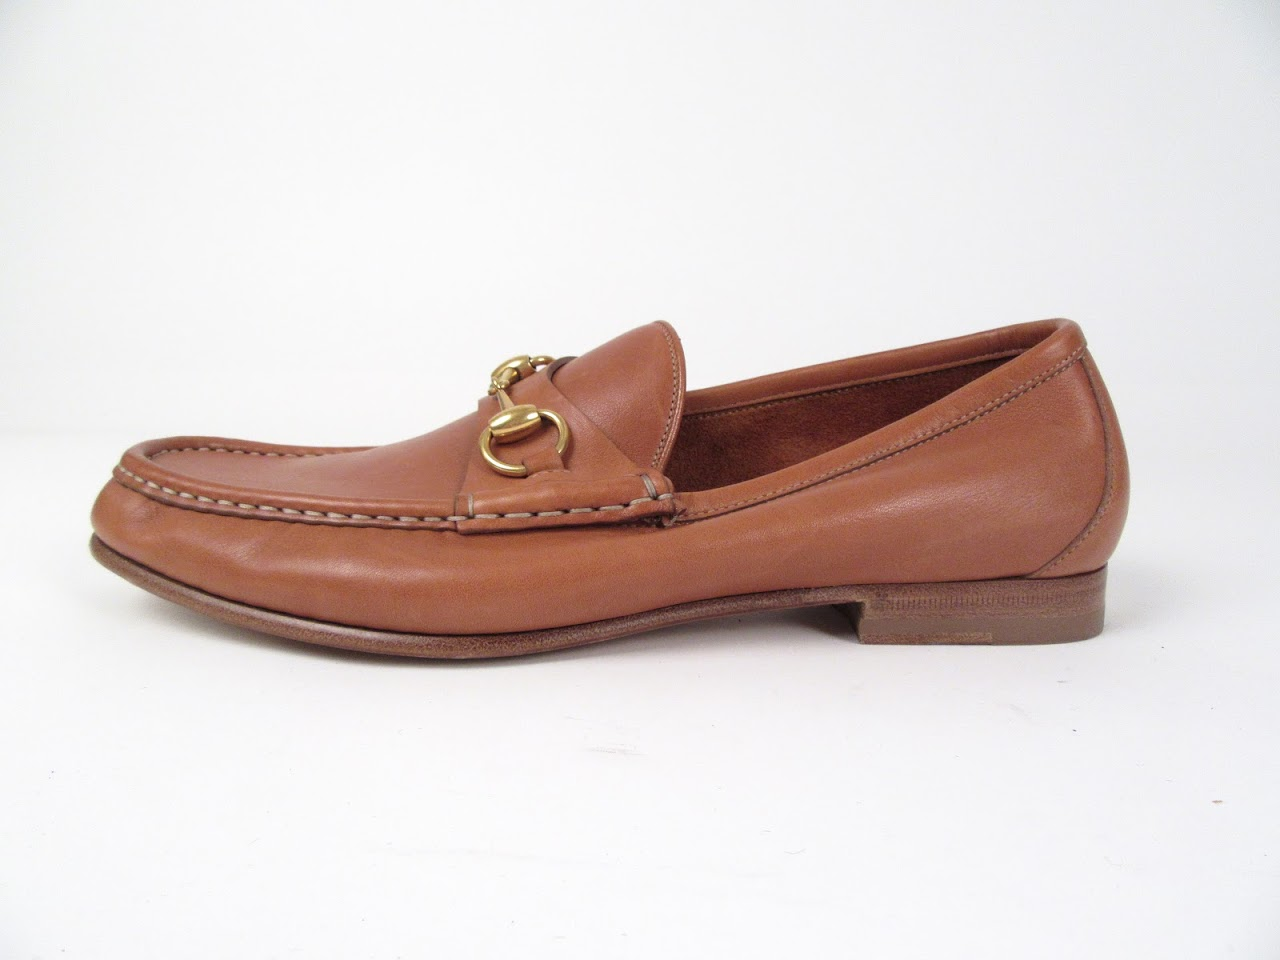 Gucci Tan Leather Loafers